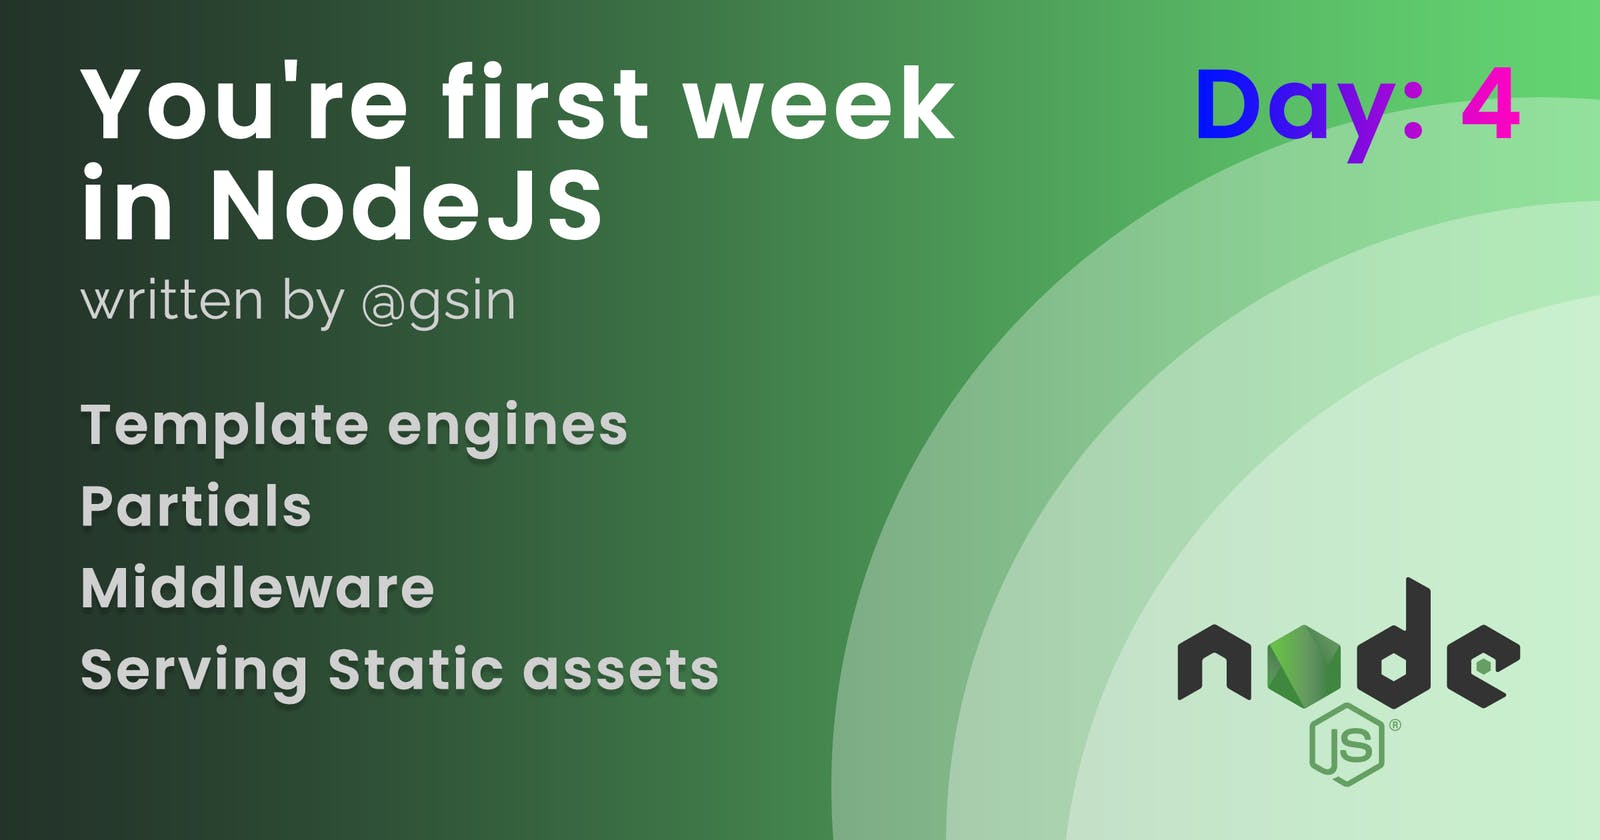 Day 4 - Your first week in NodeJS